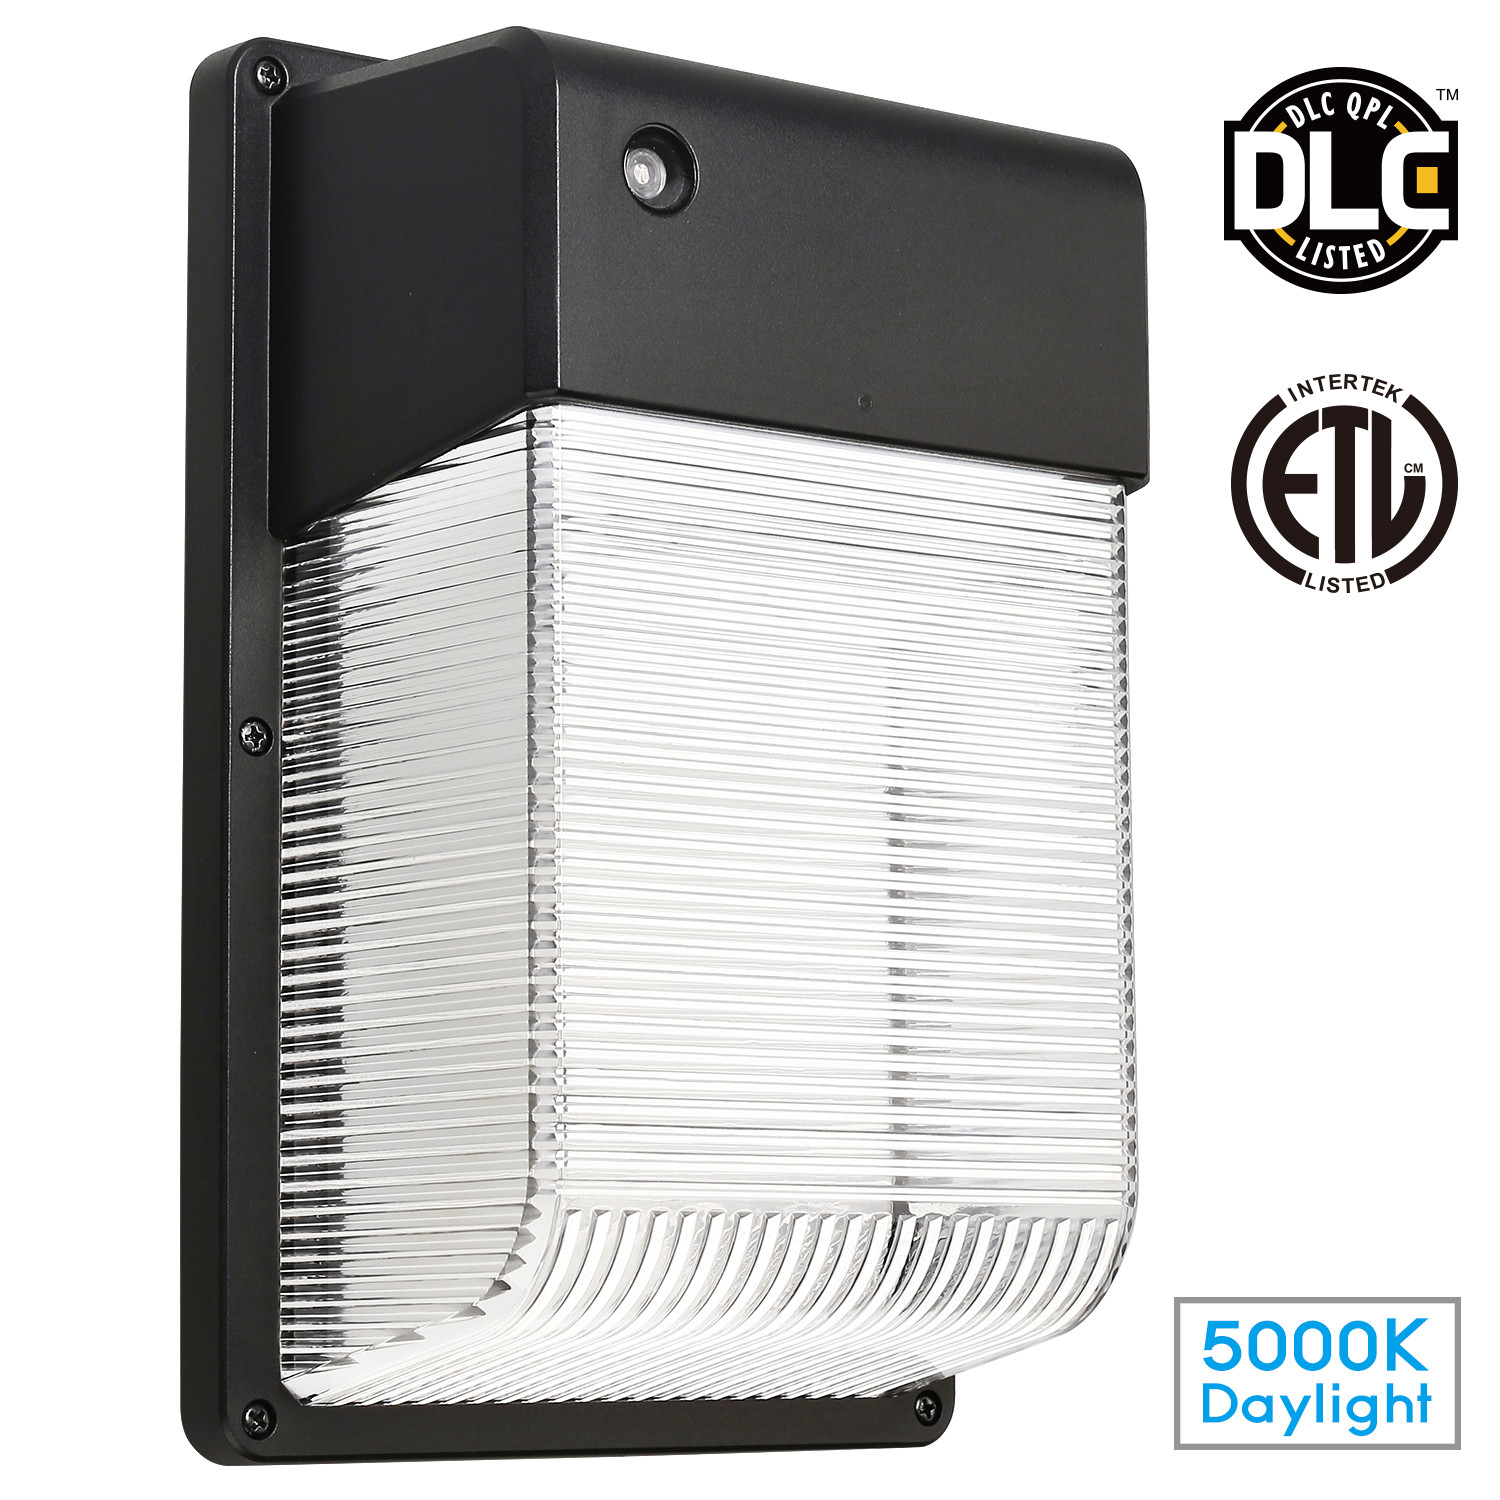 LEONLITE 16W Dusk to Dawn LED Wall Light, Security Area Lighting, Outdoor LED Wall Mount Light, 150W Equivalent DLC Qualified, ETL-listed